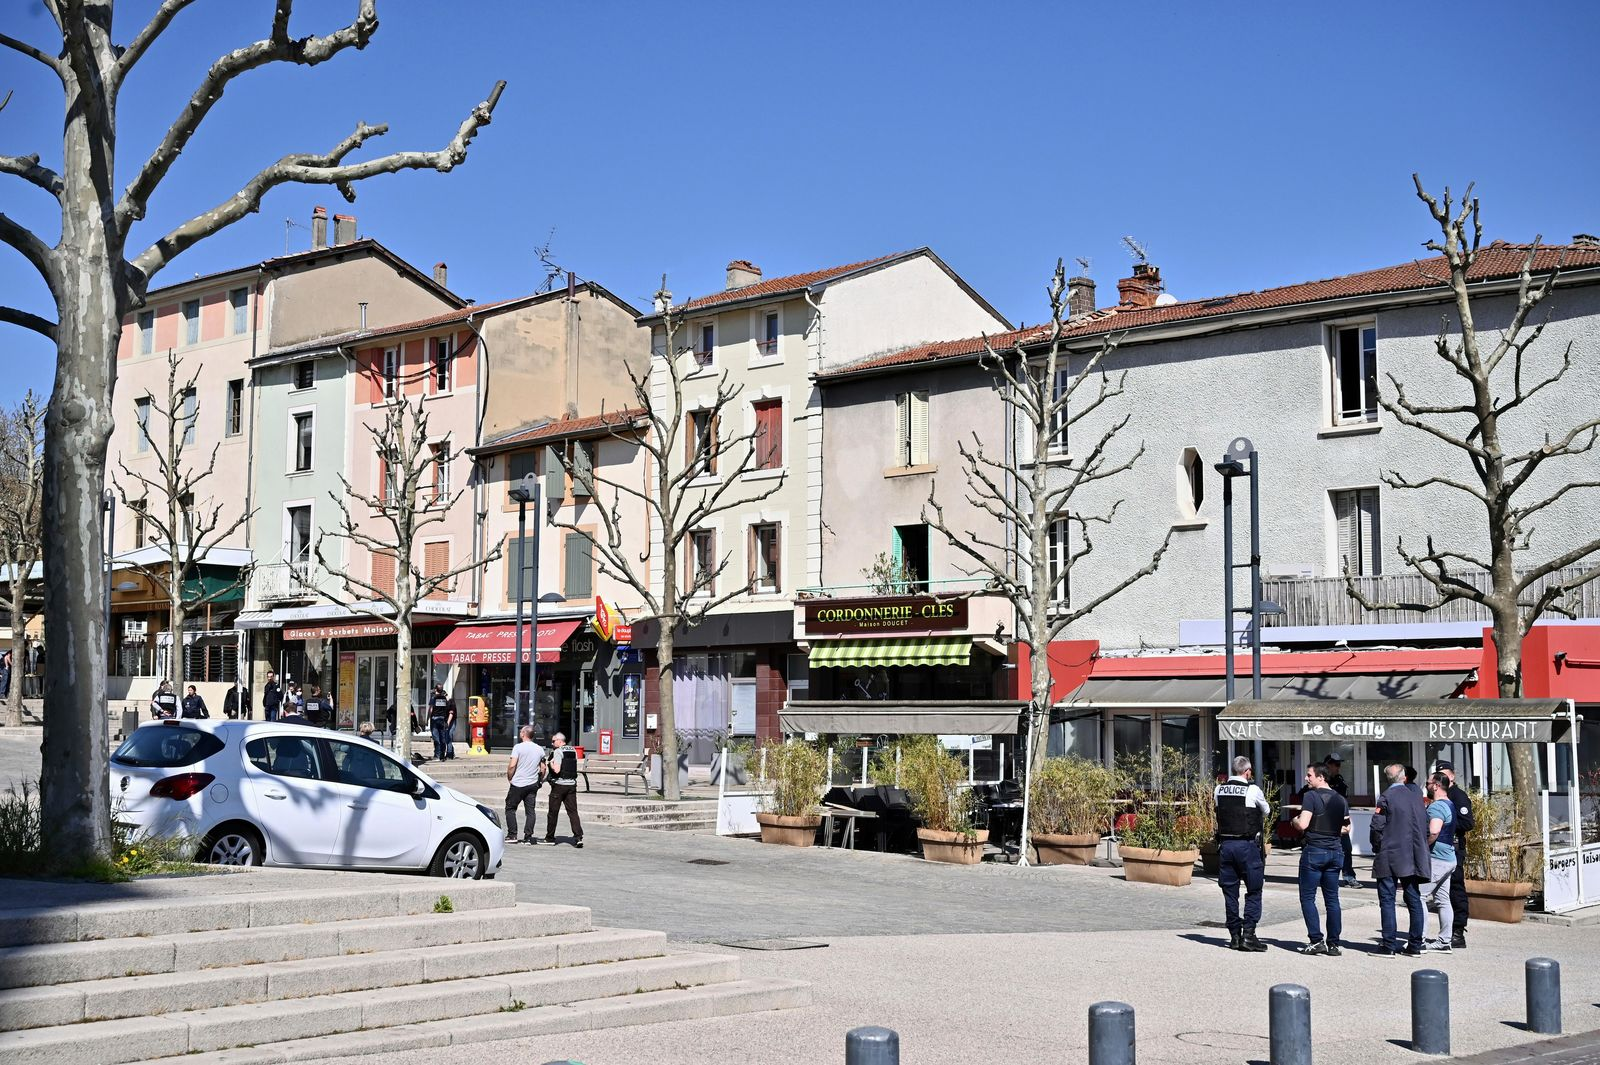 Police officers patrol after a man wielding a knife attacked residents venturing out to shop in the town under lockdown, Saturday April 4, 2020 in Romans-sur-Isere, southern France. (AP Photo)